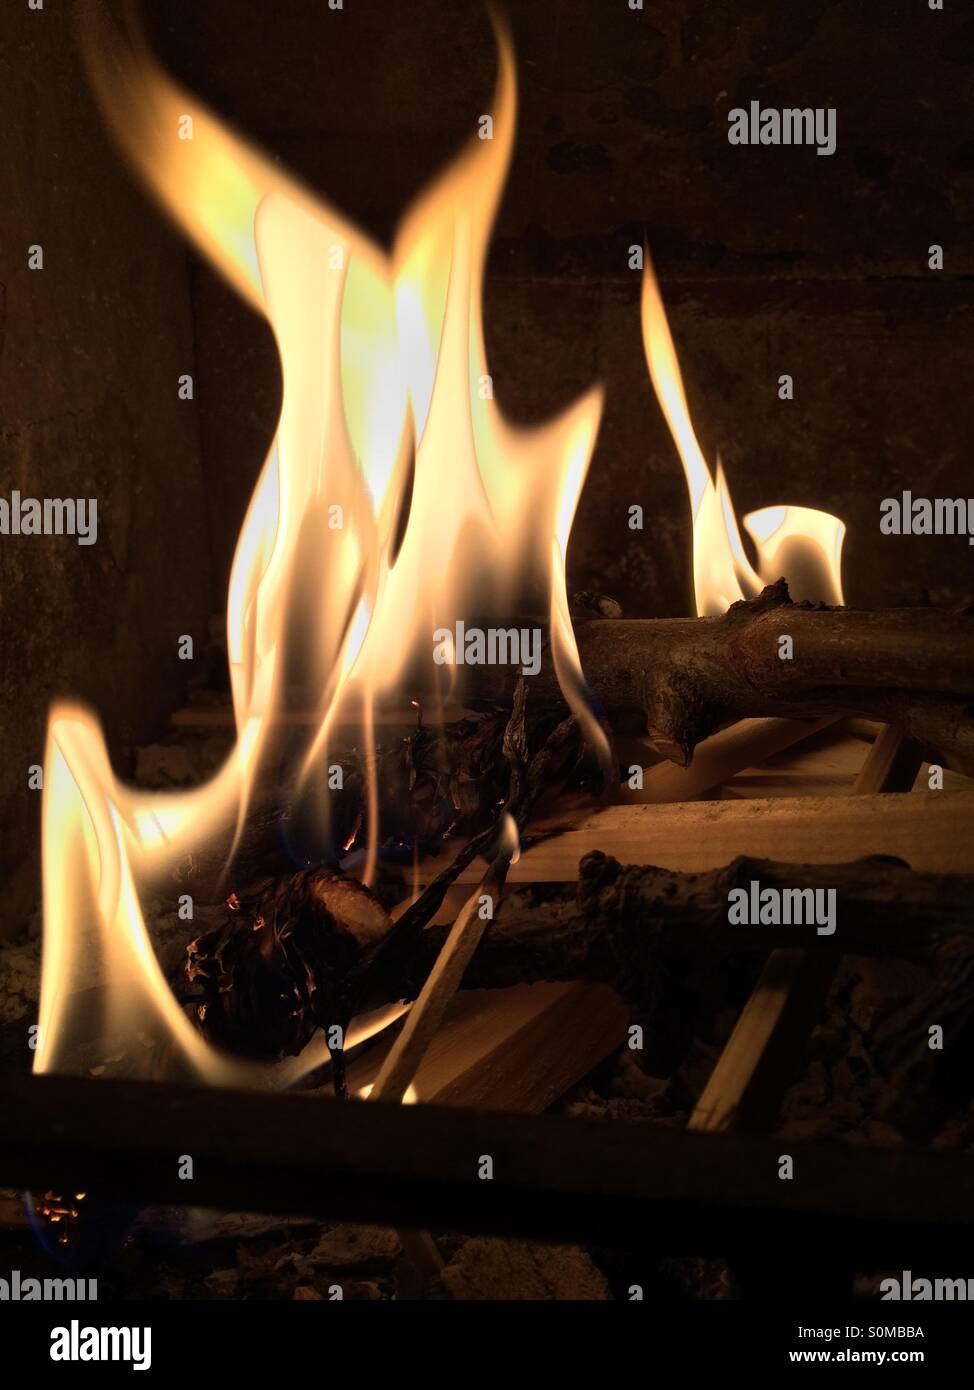 Lit up and throwing out heat. - Stock Image